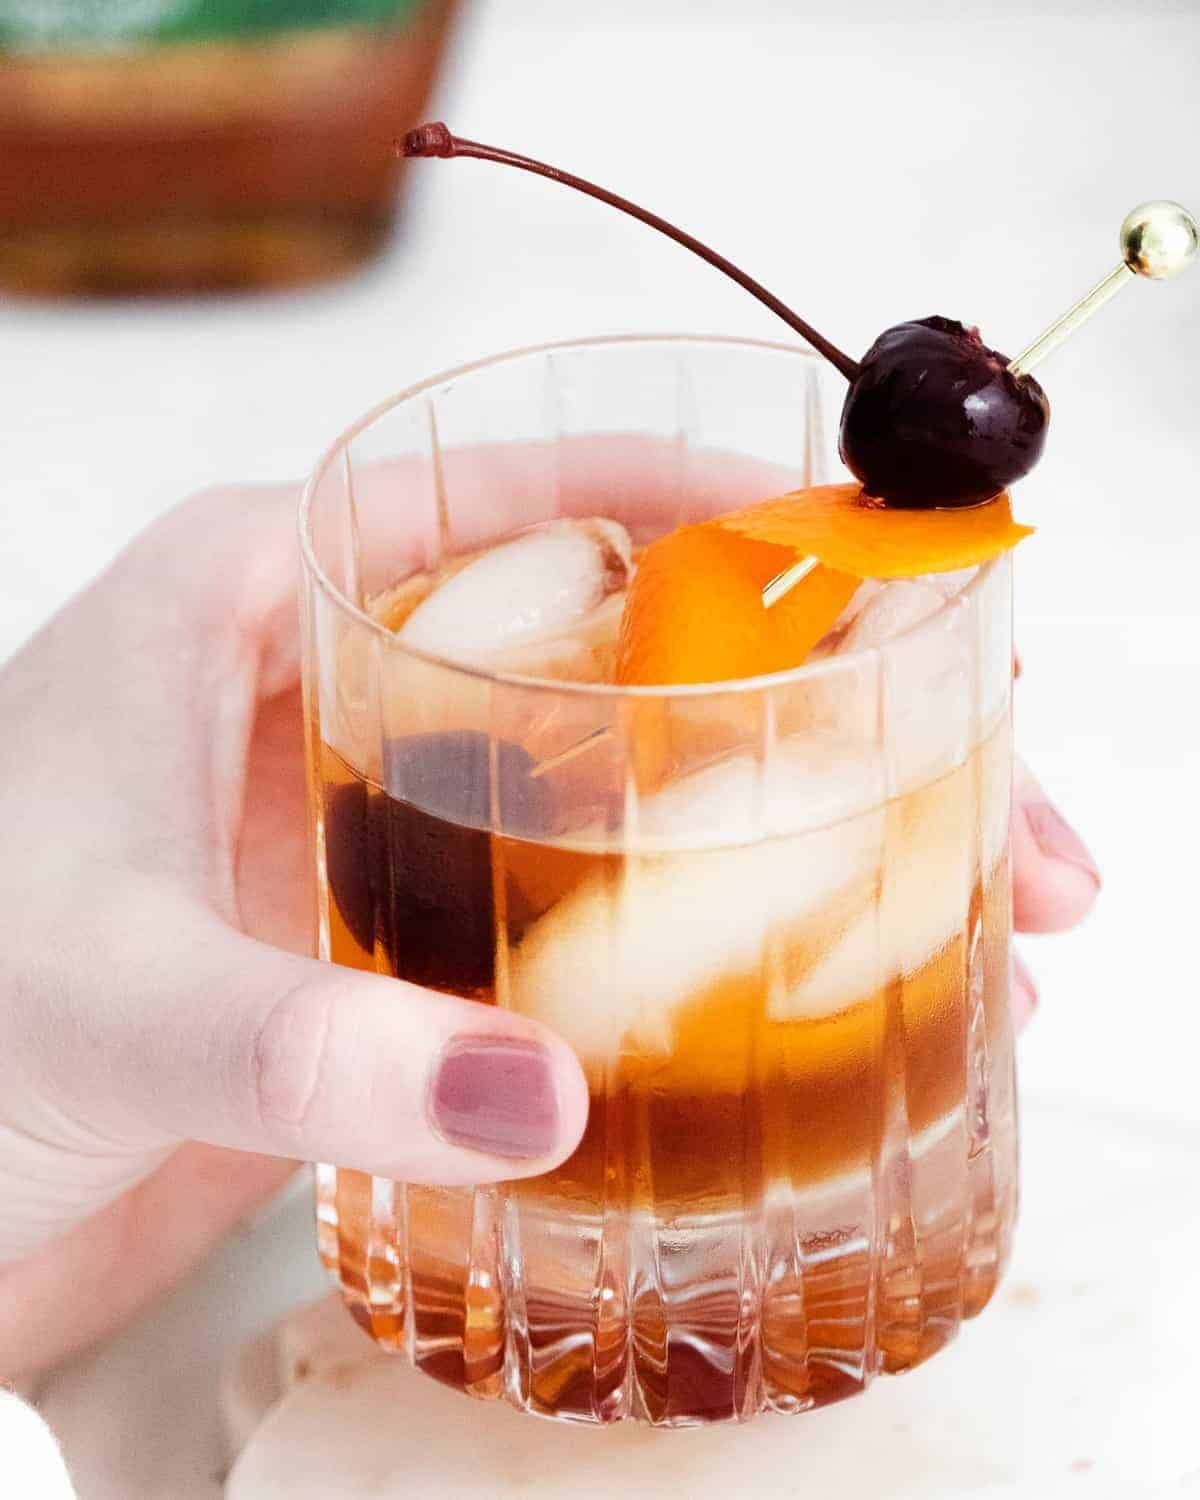 Old fashioned cocktail in a female's hand.